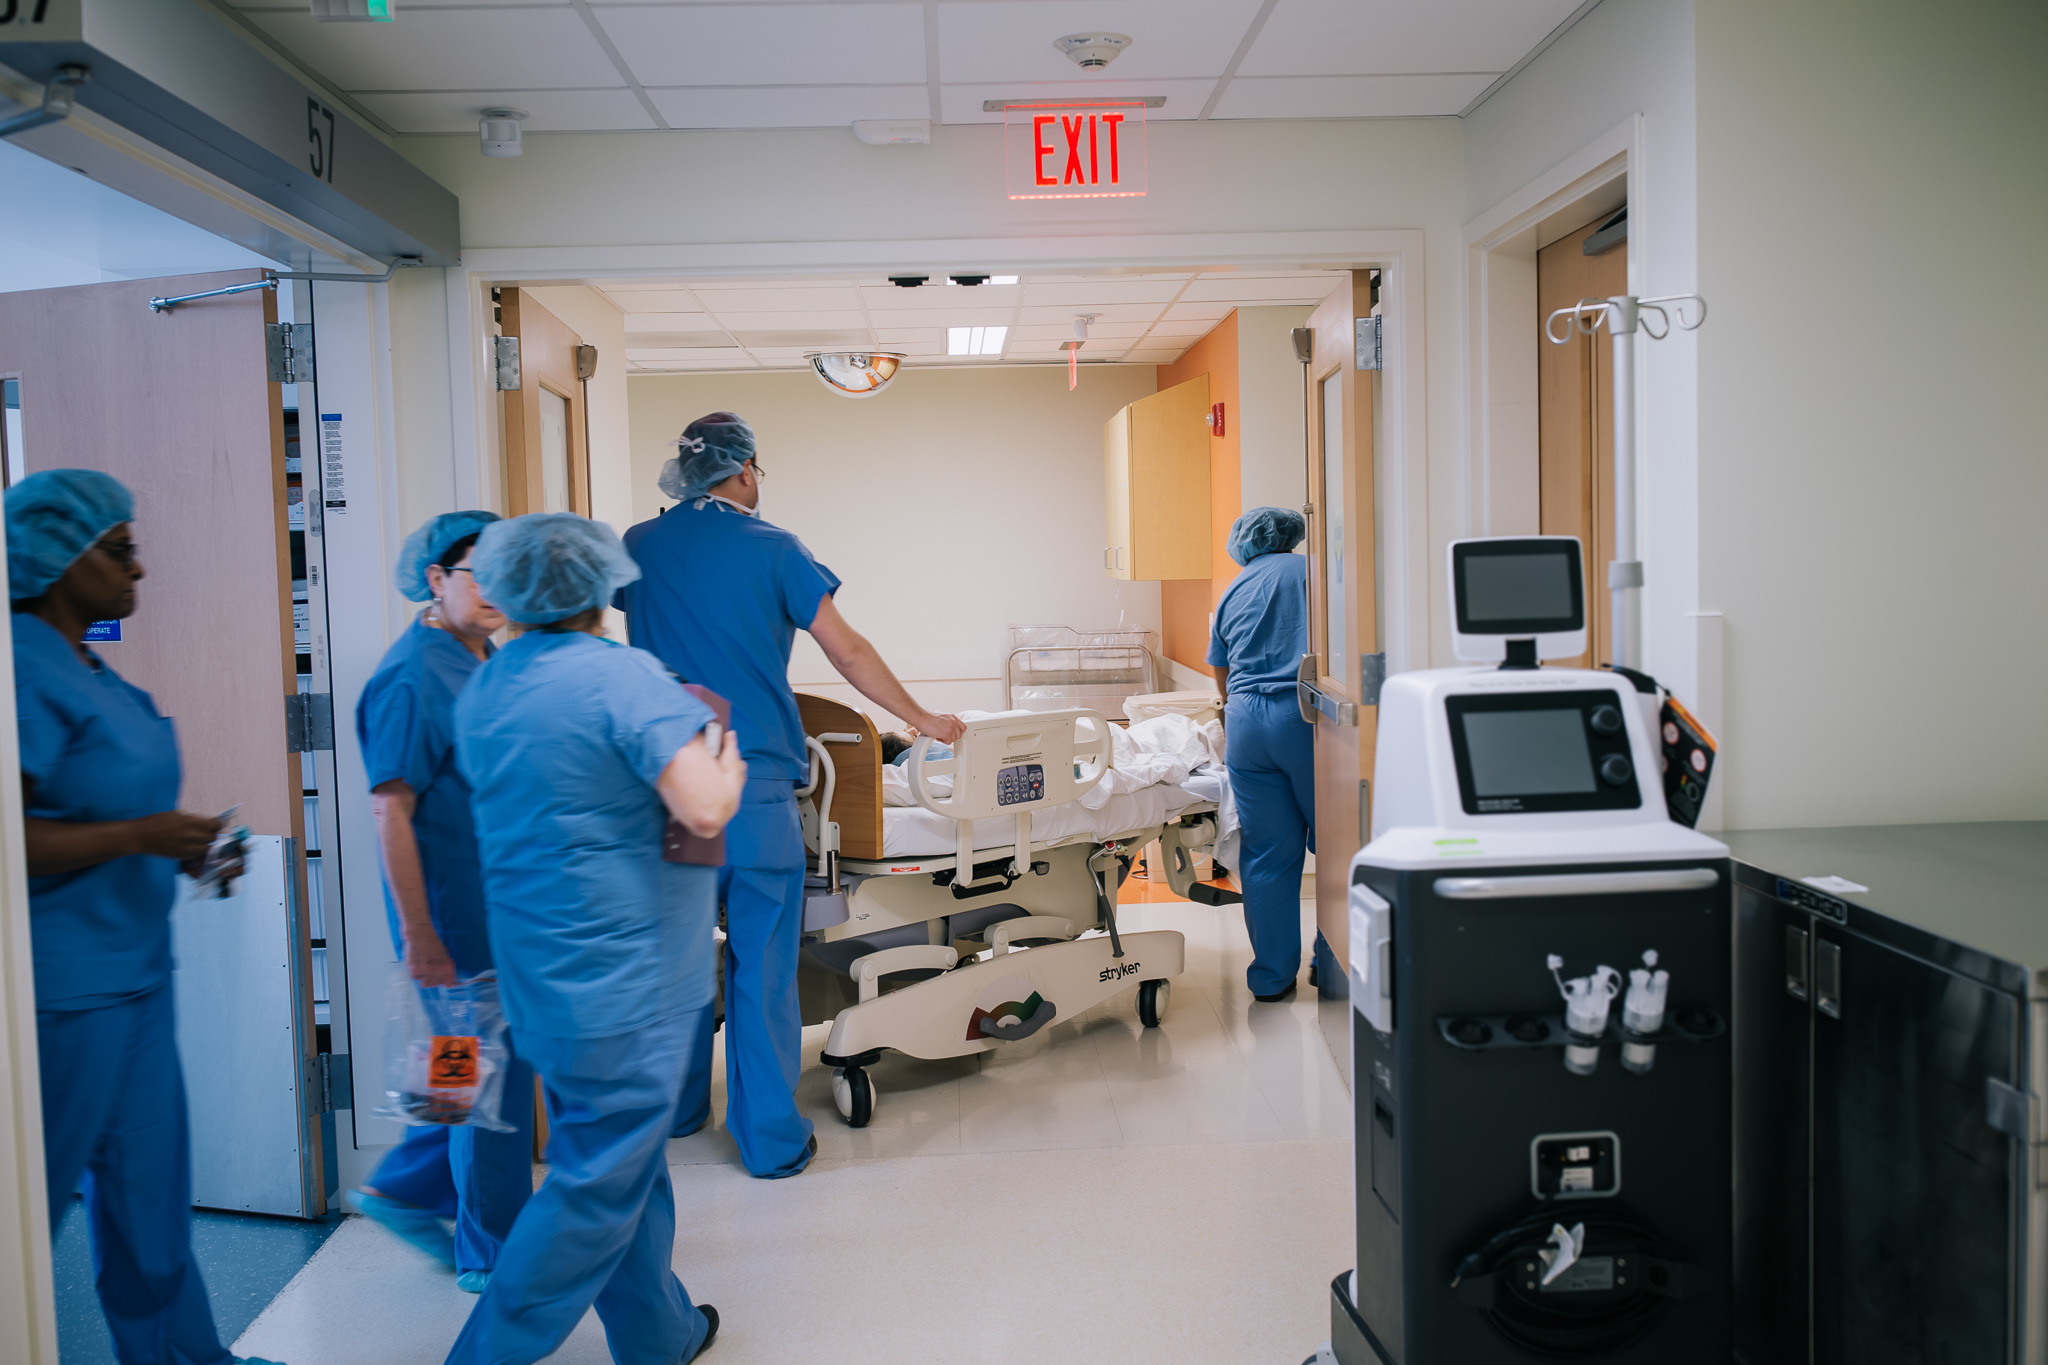 Wheeling a mom out of the operating room after a cesarean section.